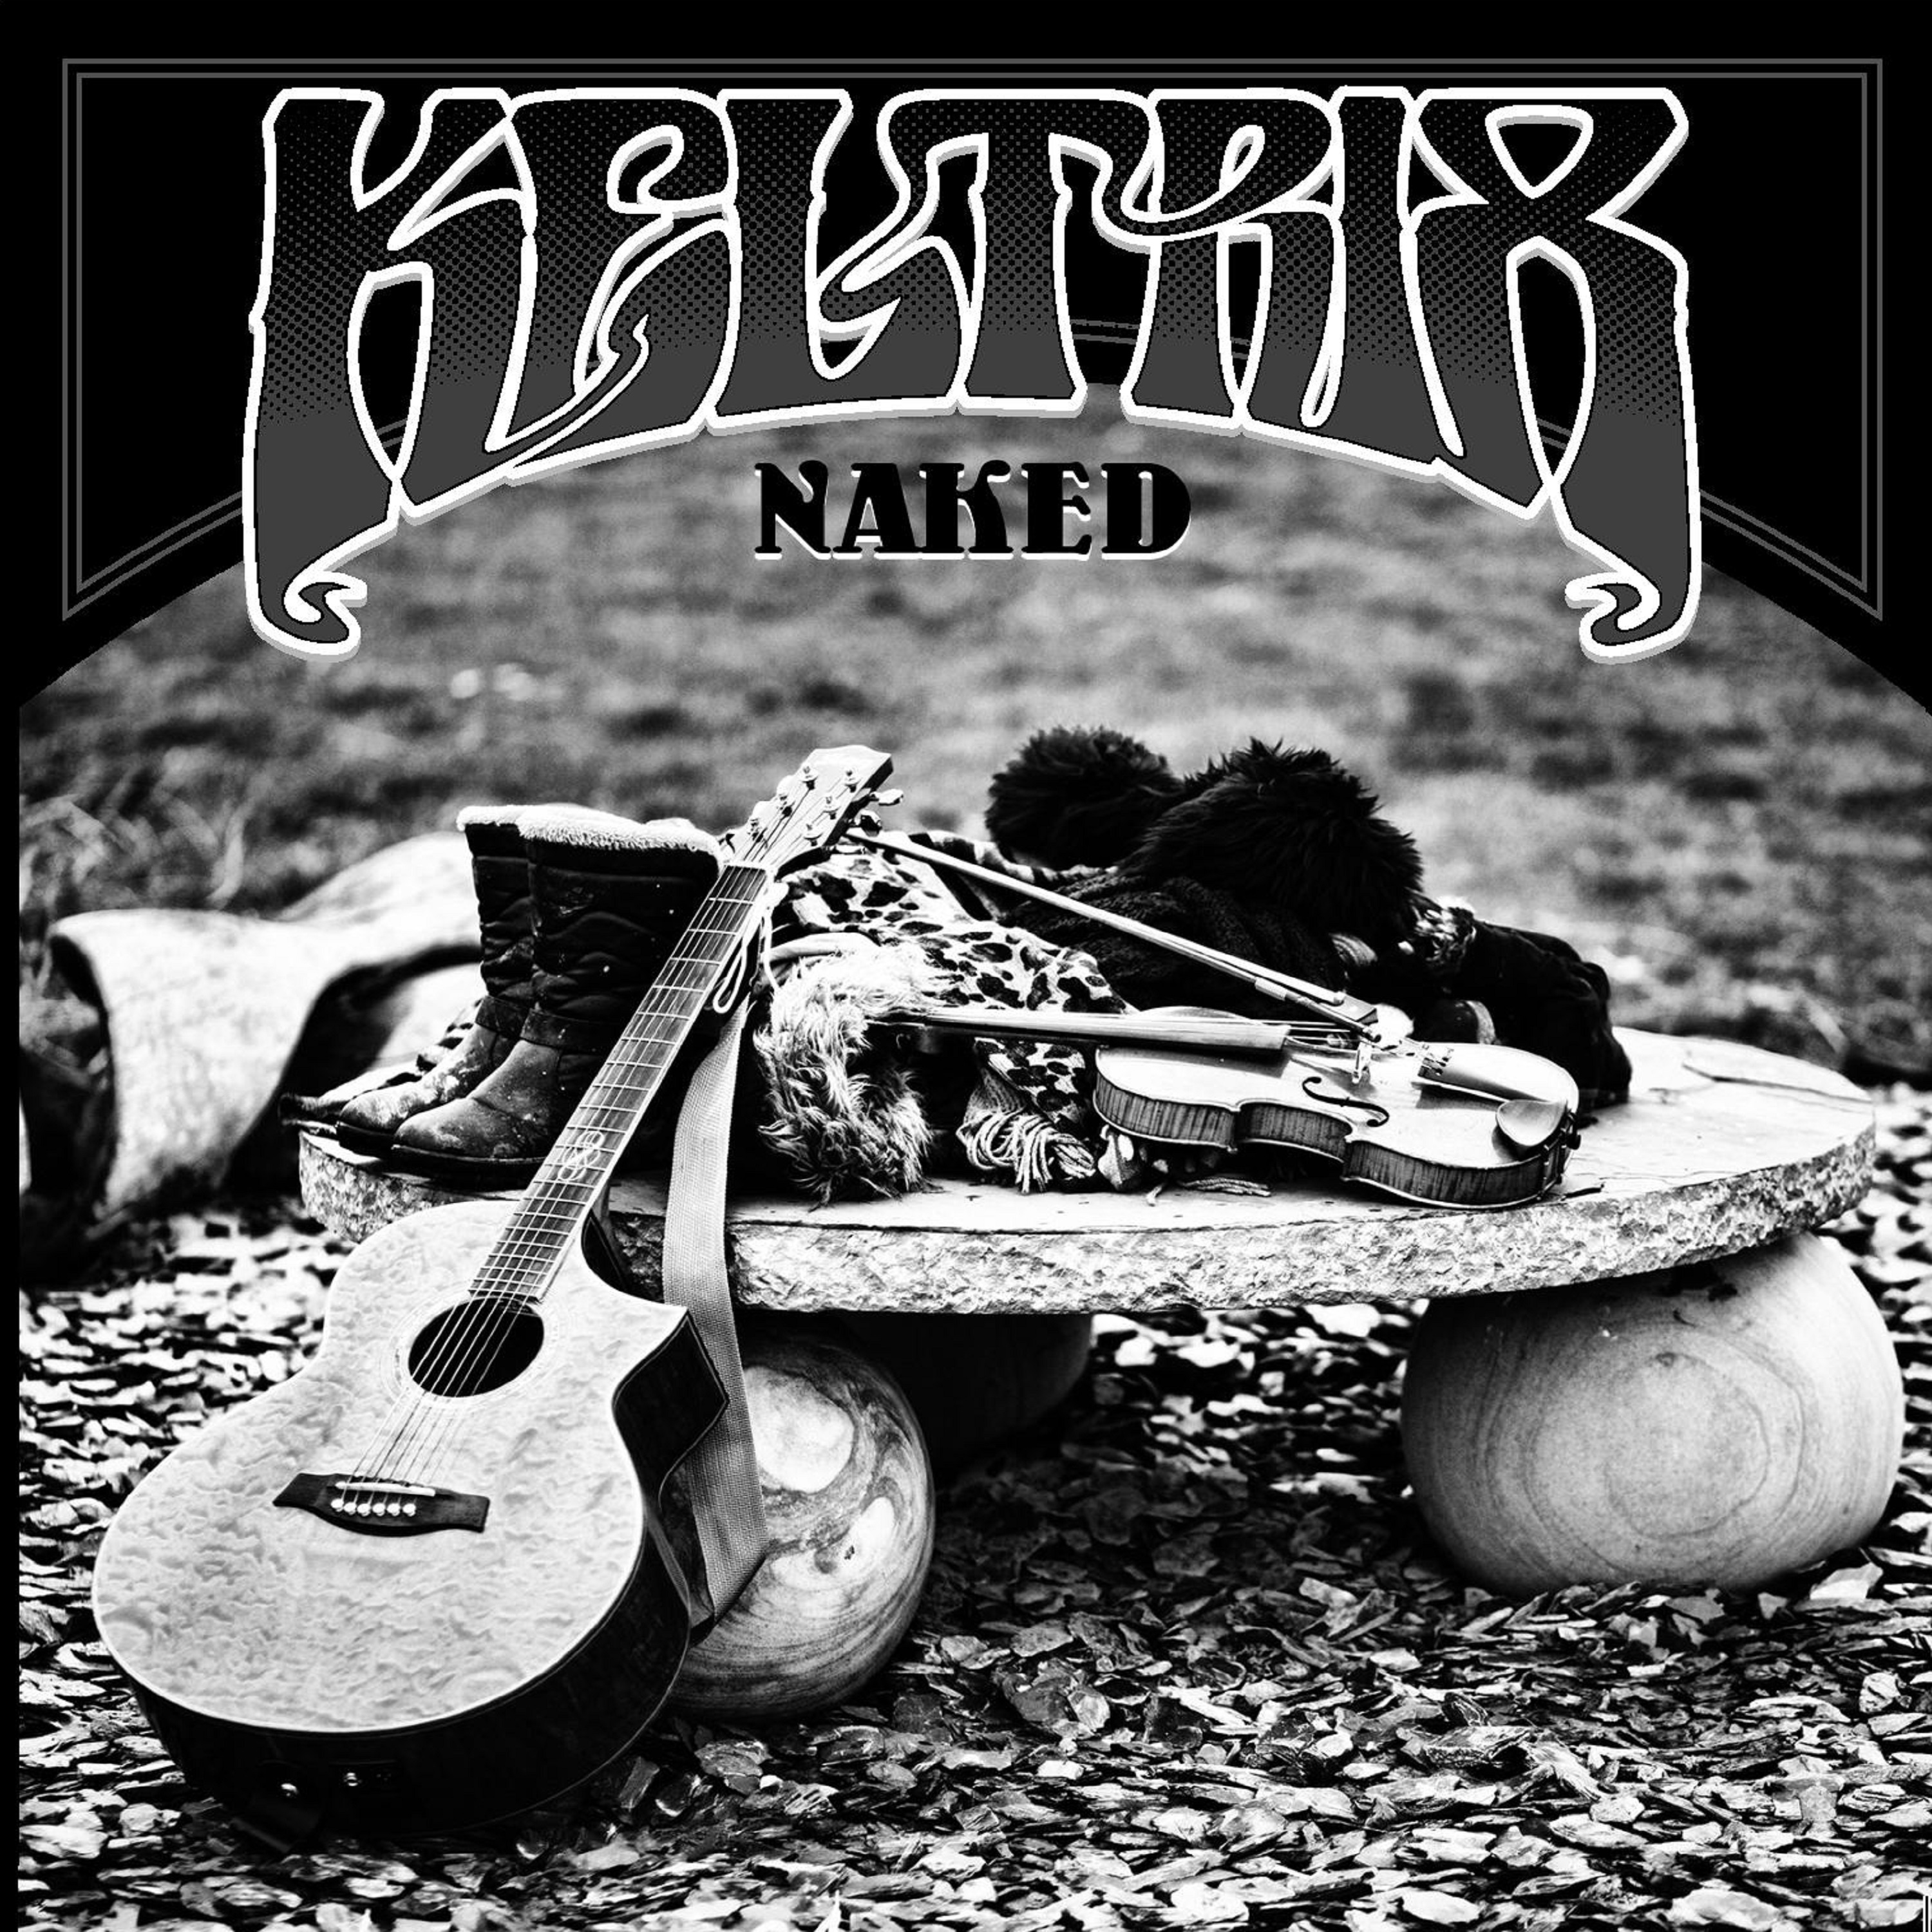 Keltrix Naked sleeve front-page-001